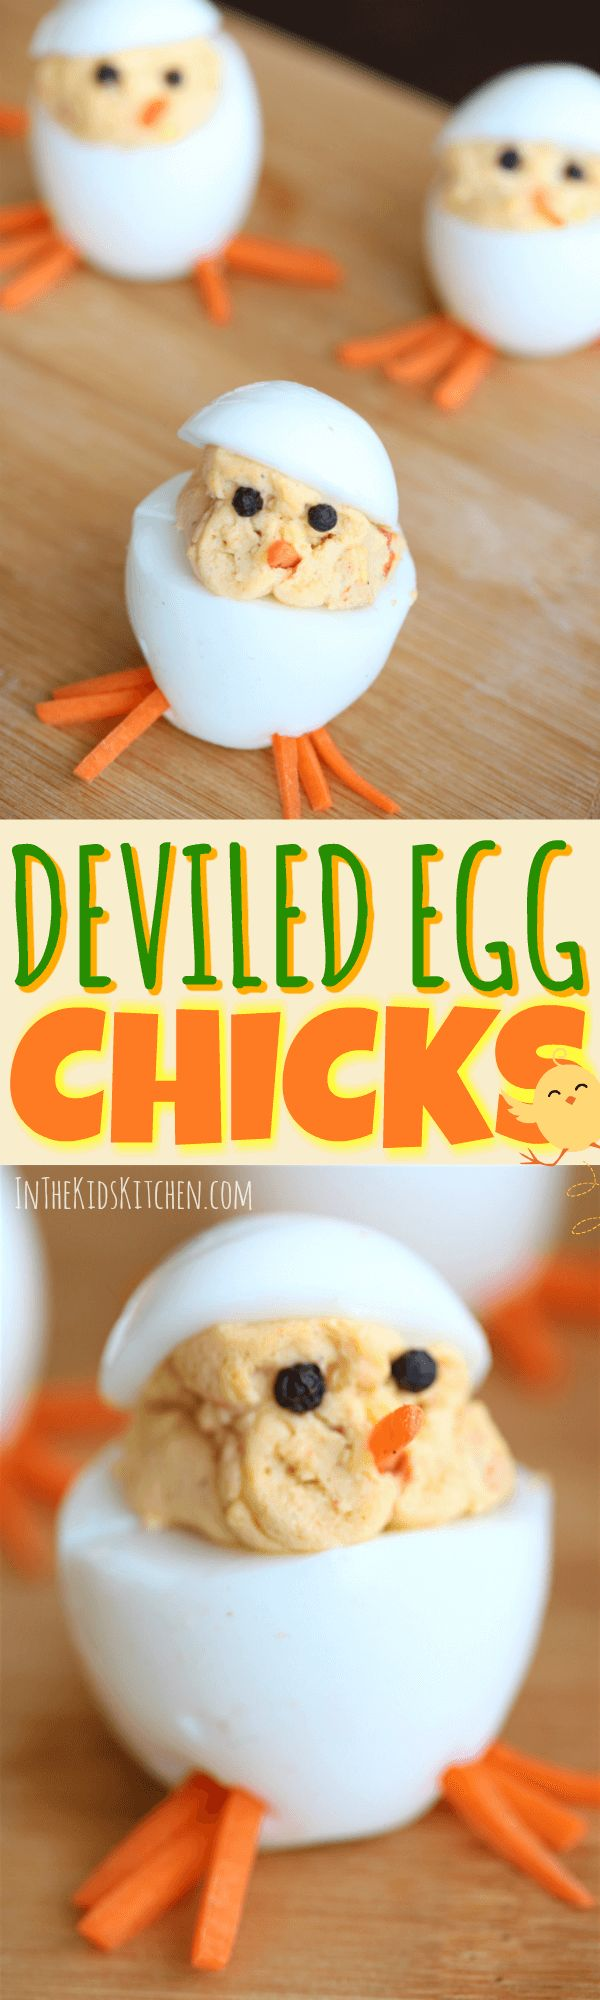 An adorable Easter-themed spin on a favorite party appetizer, these Deviled Eggs Chicks are sure to be a hit with kids and adults alike!